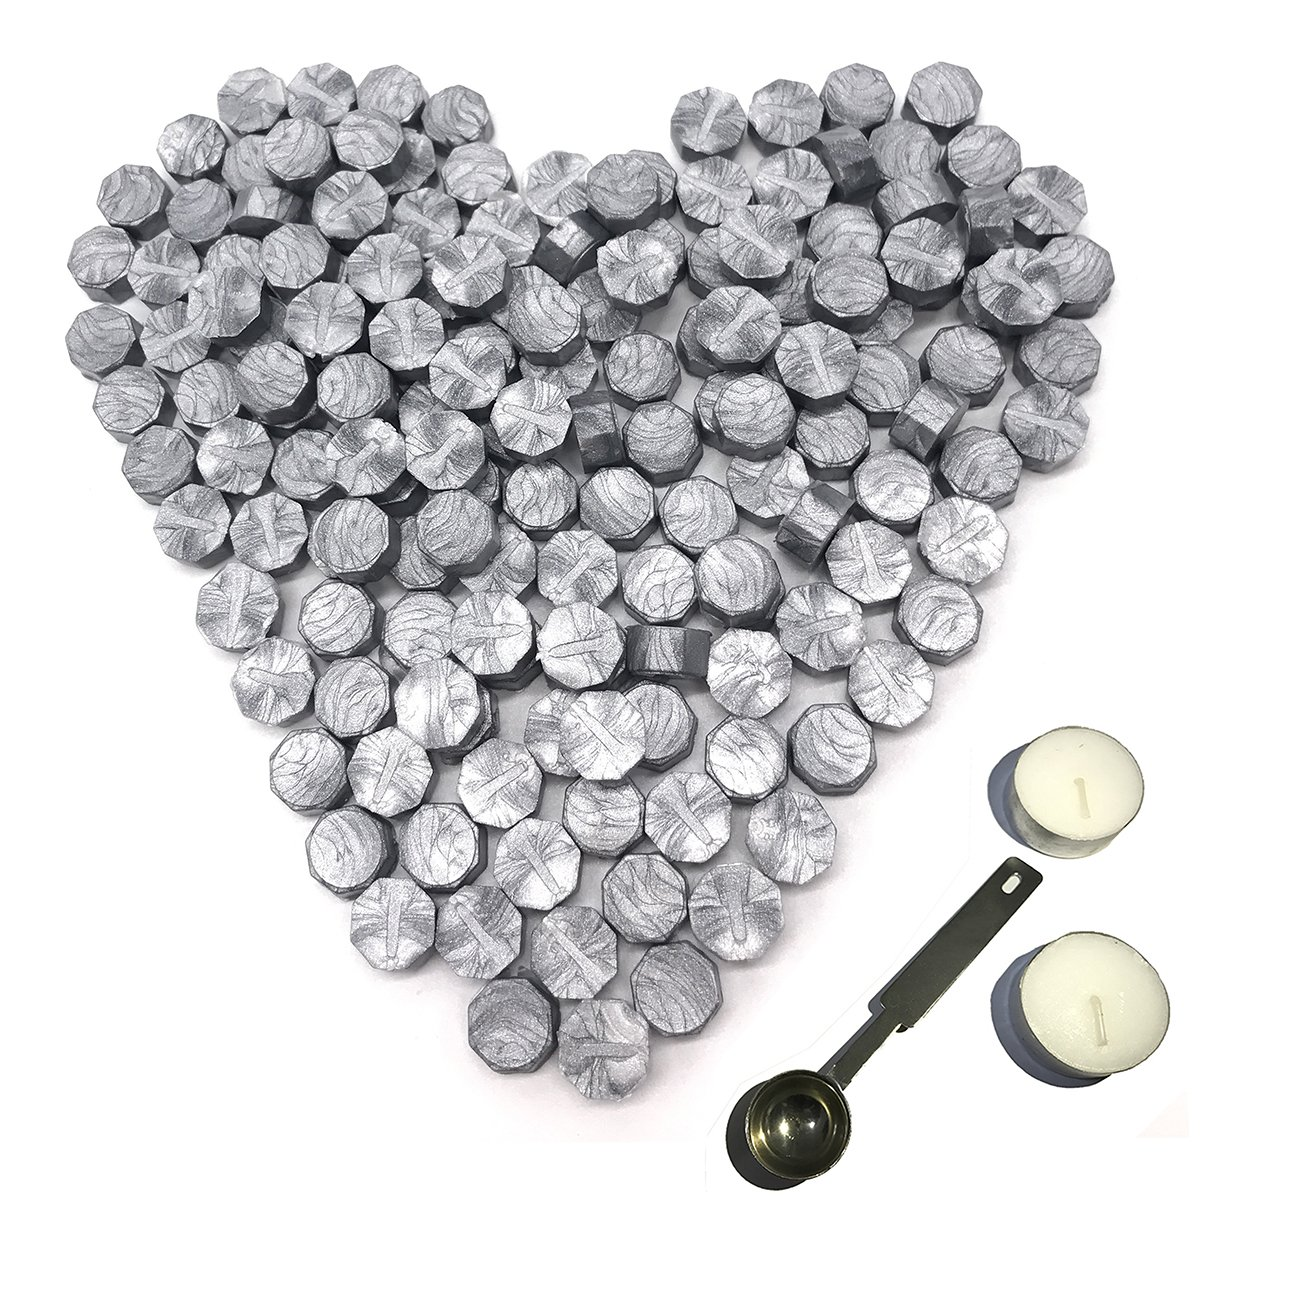 Silver Sealing Wax Beads, Botokon 150 Pieces Octagon Wax Seal Beads Kit with a Wax Melting Spoon and 2 Pieces Candles for Wax Seal Stamp (Silver)